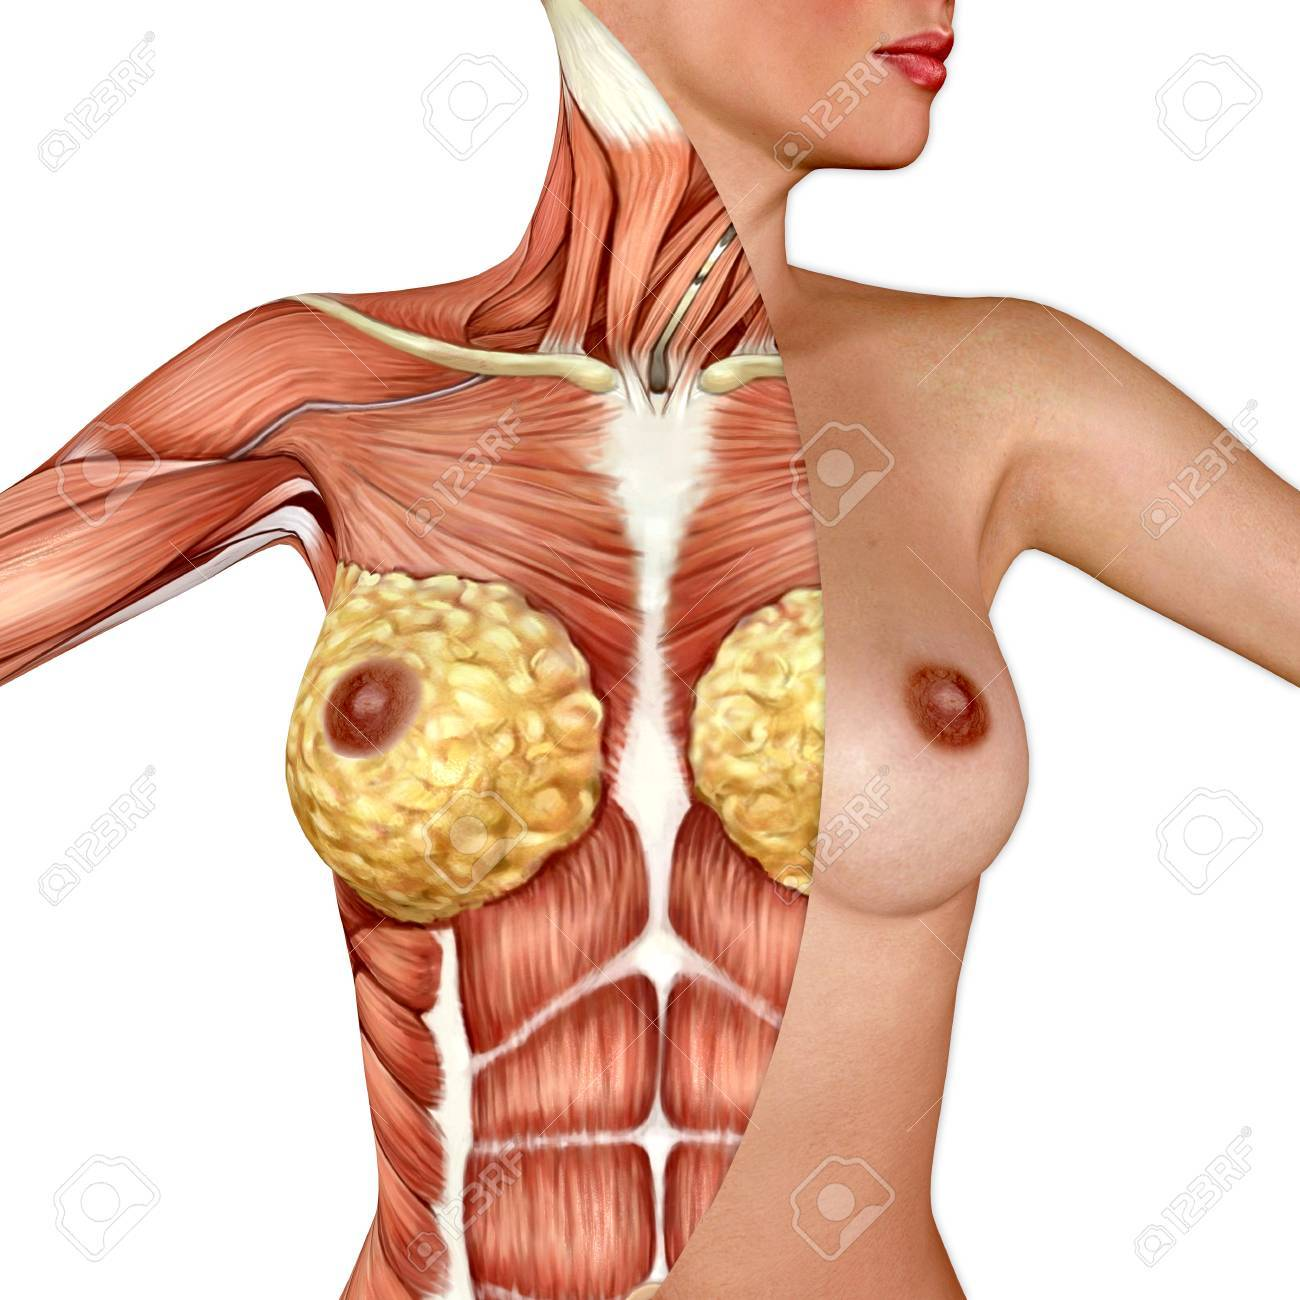 3d Anatomy Of The Female Breast Stock Photo, Picture And Royalty ...